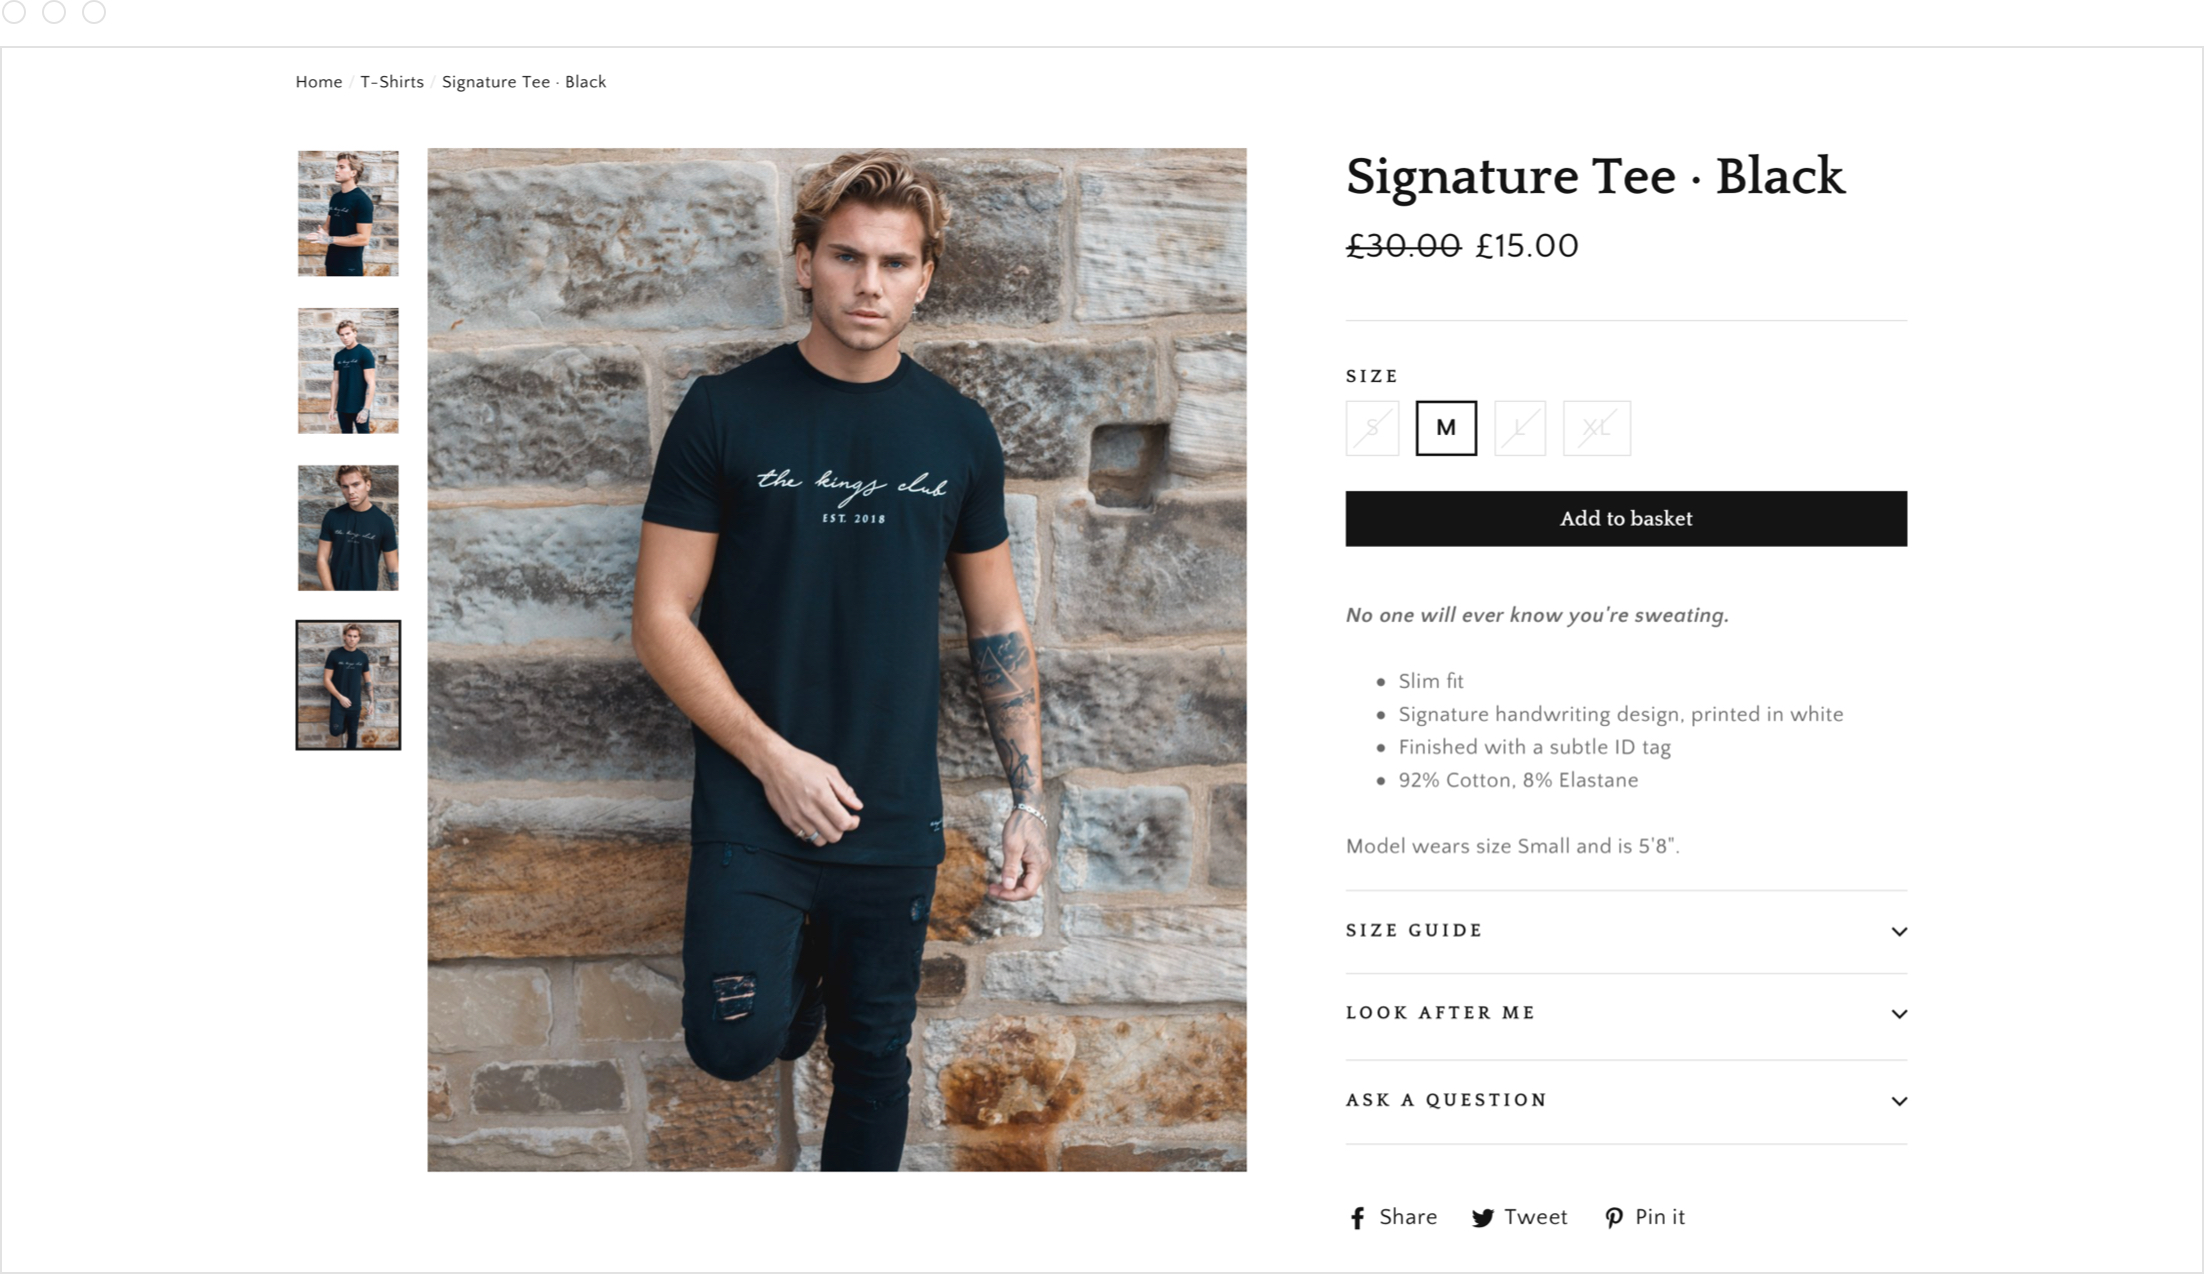 Product page, website and online store design for men's clothing brand, The Kings Club